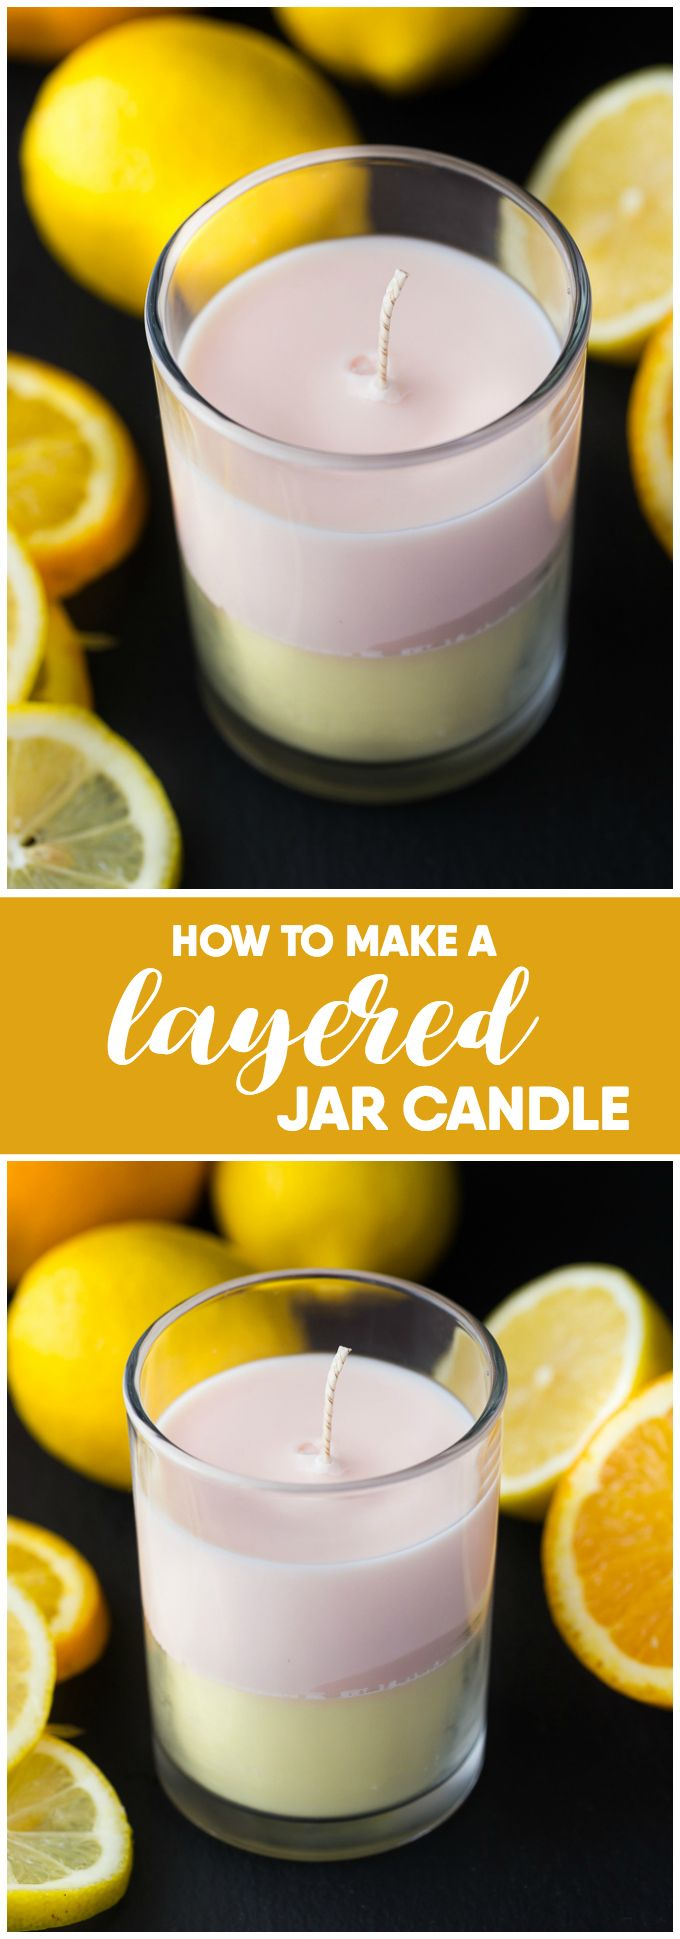 How to Make a Layered Jar Candle - You will not believe how easy it is to make. It makes a wonderful DIY gift!